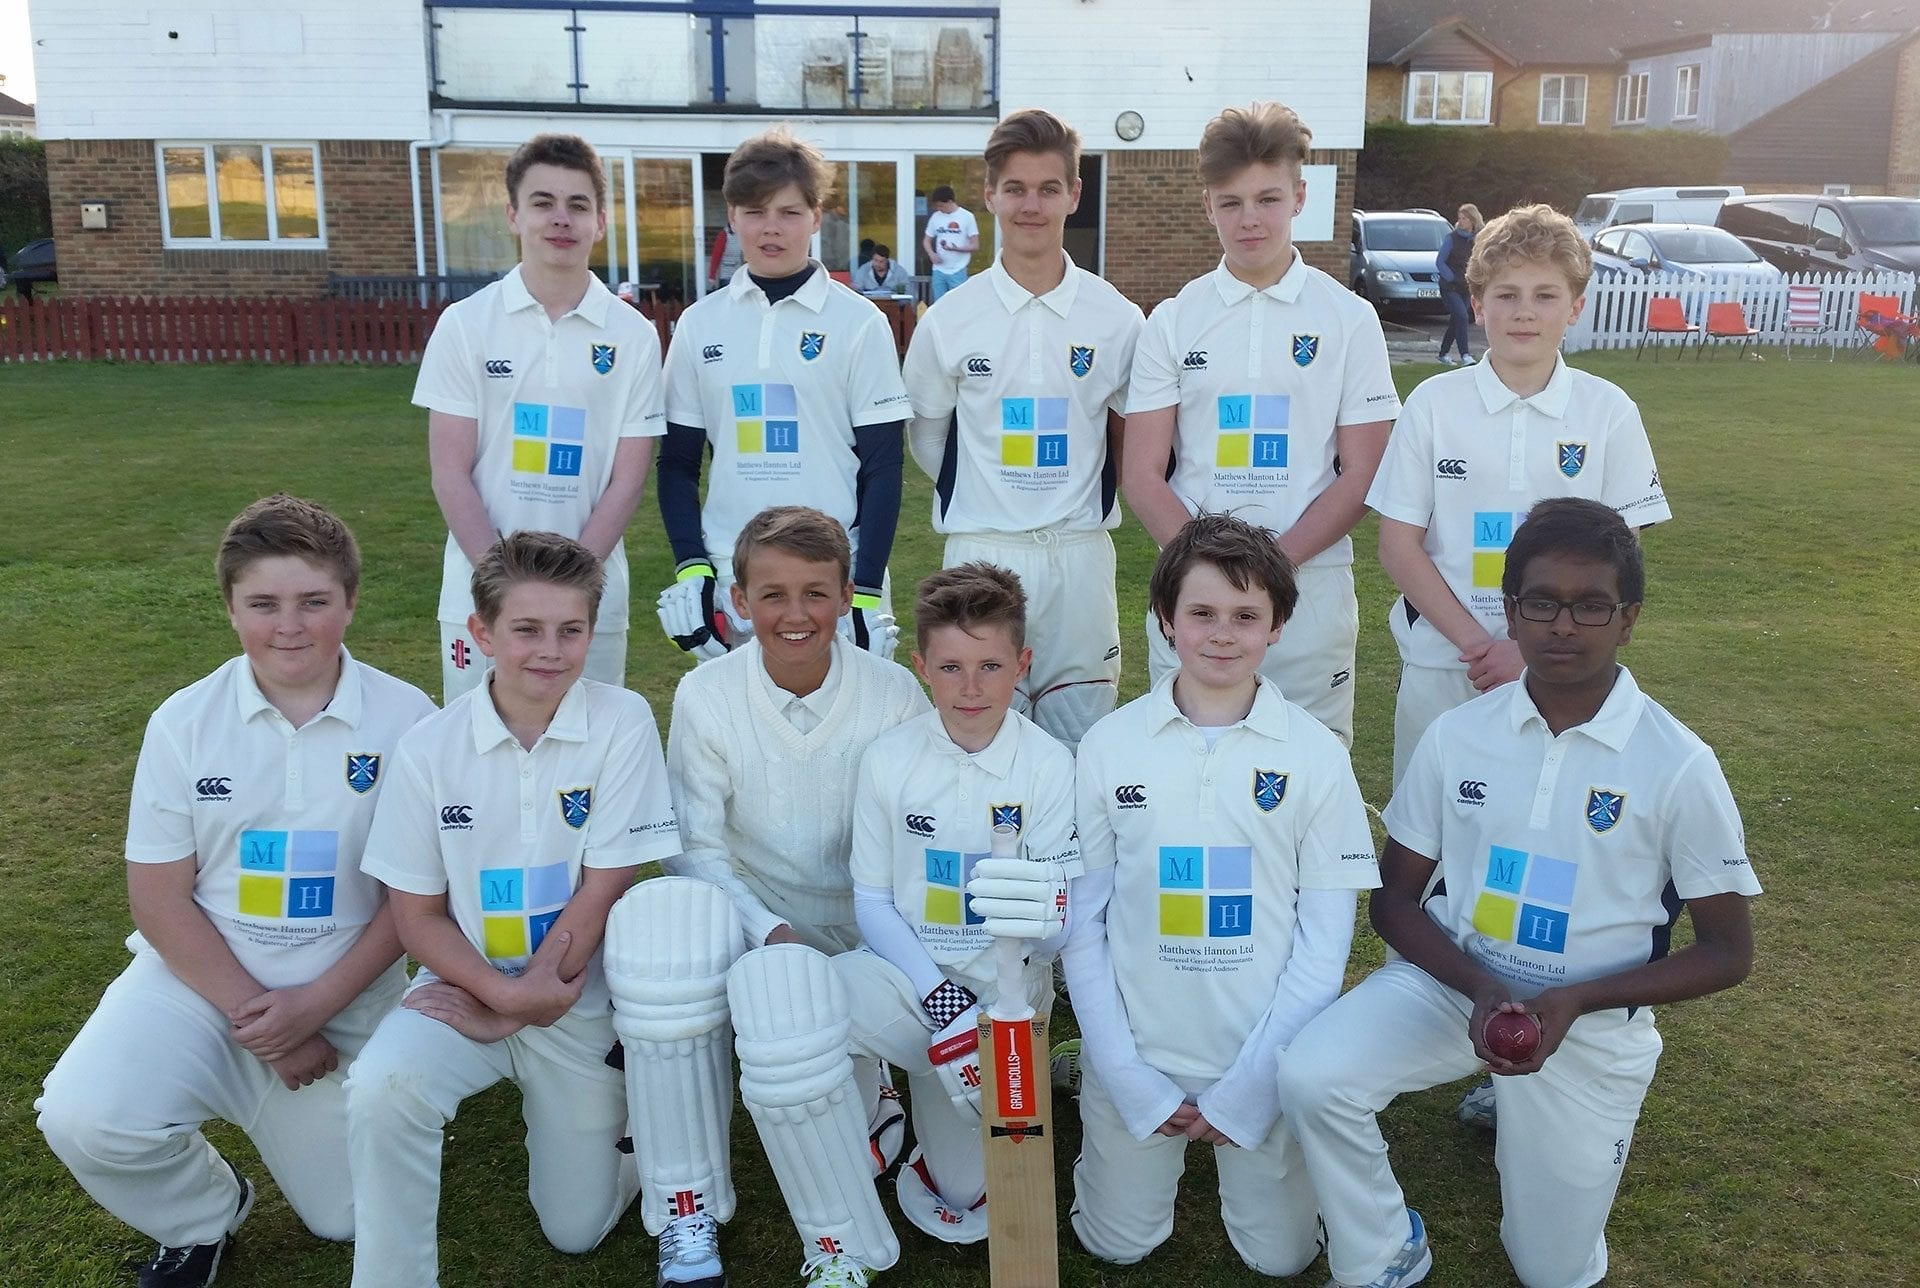 Cricket team sponsored by Matthews Hanton